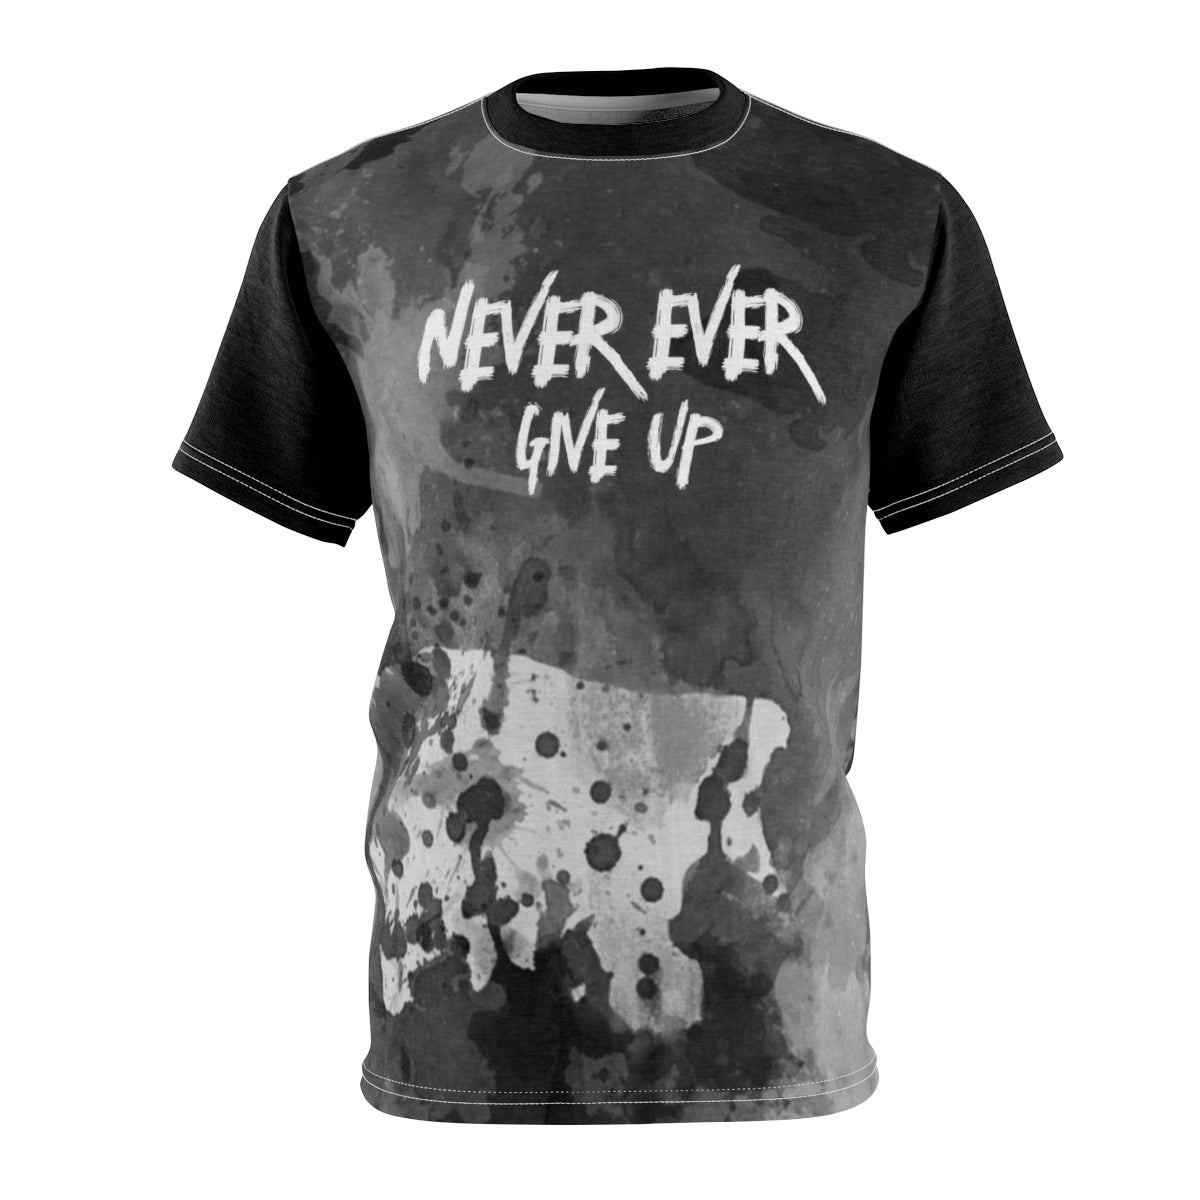 Inspirational Unisex T-shirt, Never Ever Give Up Tee, AOP Cut & Sew - skyrockettees